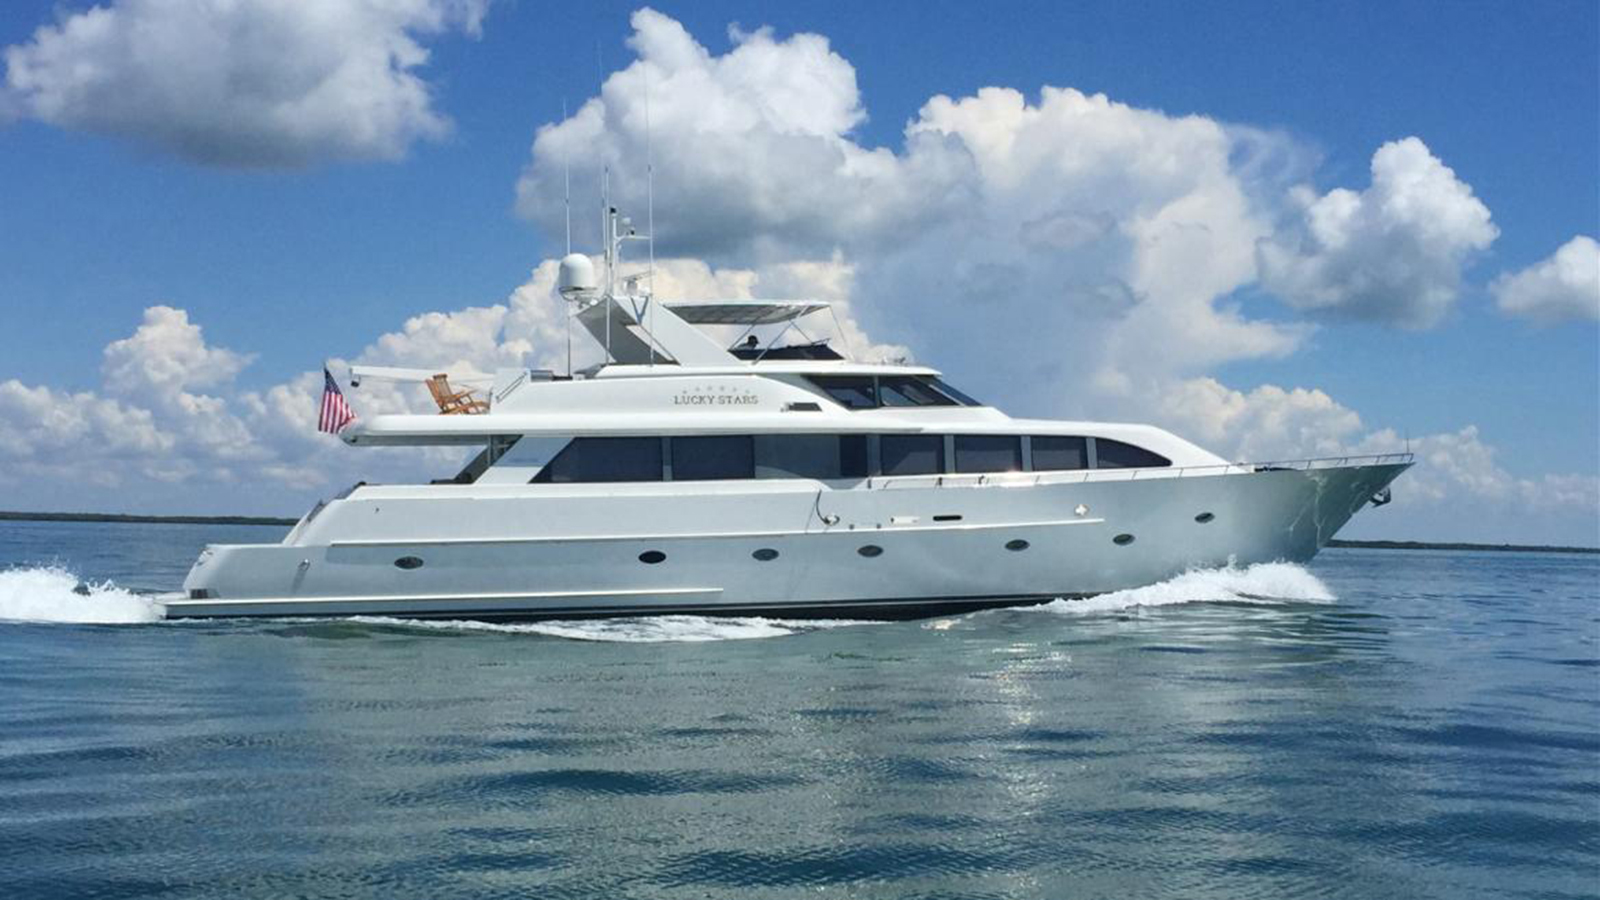 the-westport-motor-yacht-lucky-stars-has-been-sold